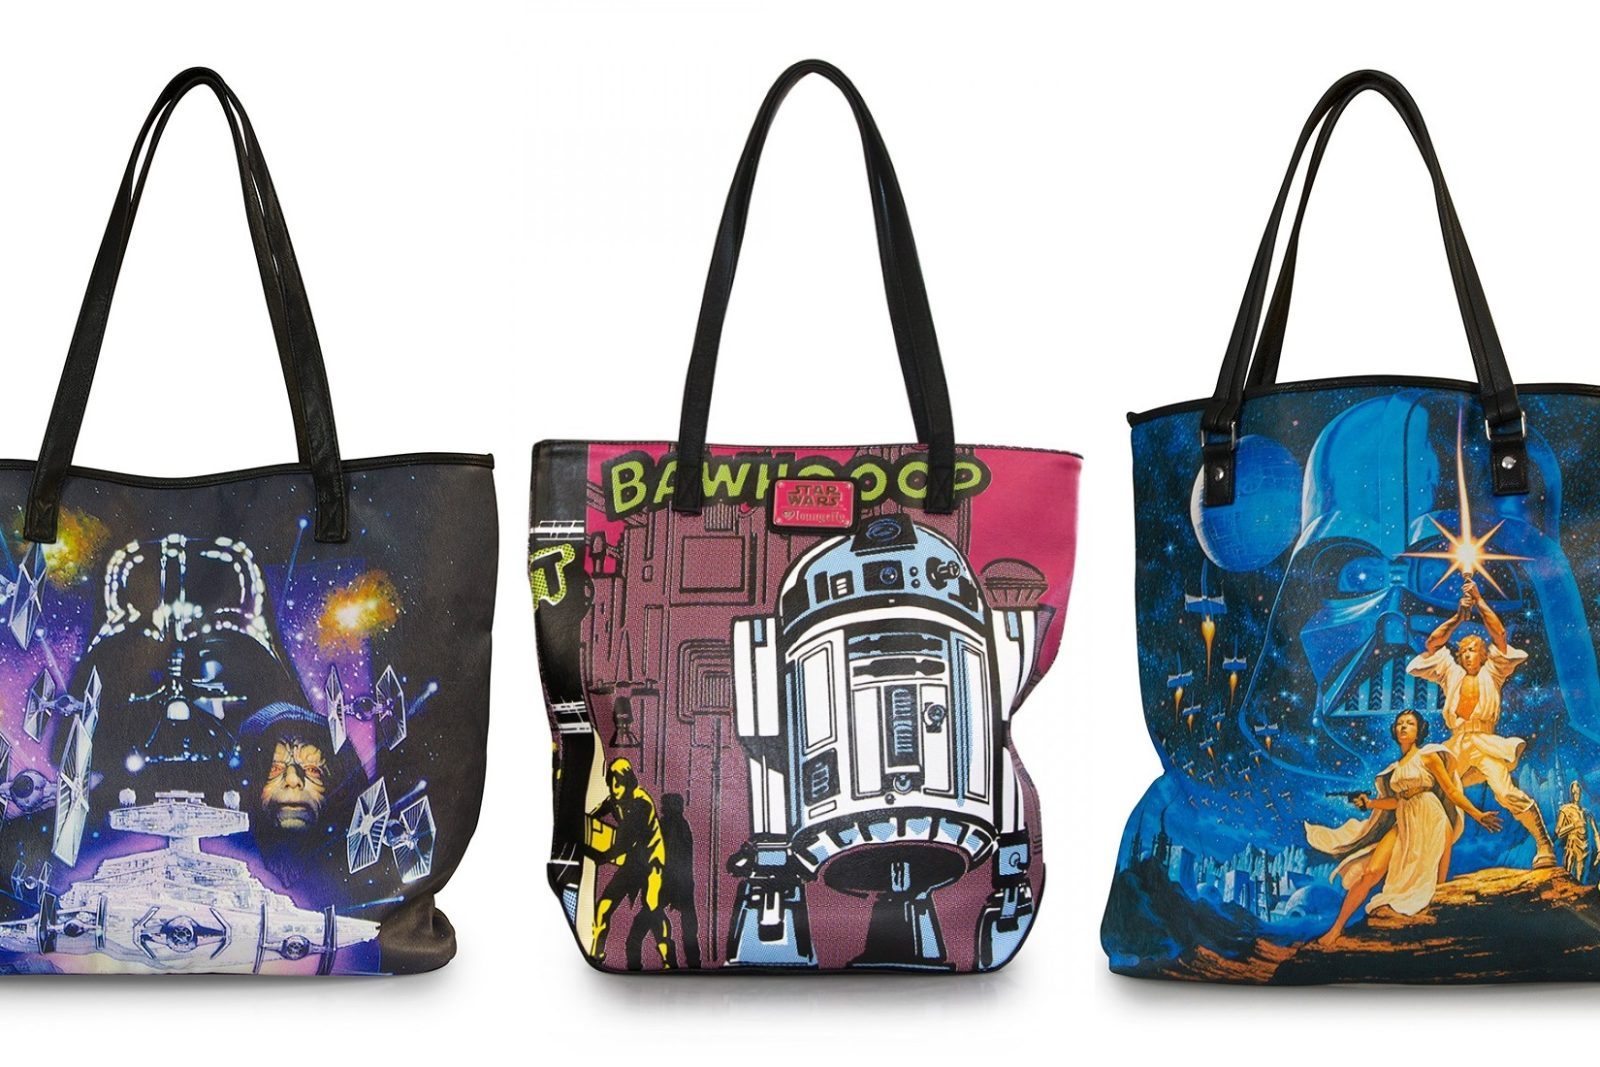 Loungefly x Star Wars Tote Bags On Sale